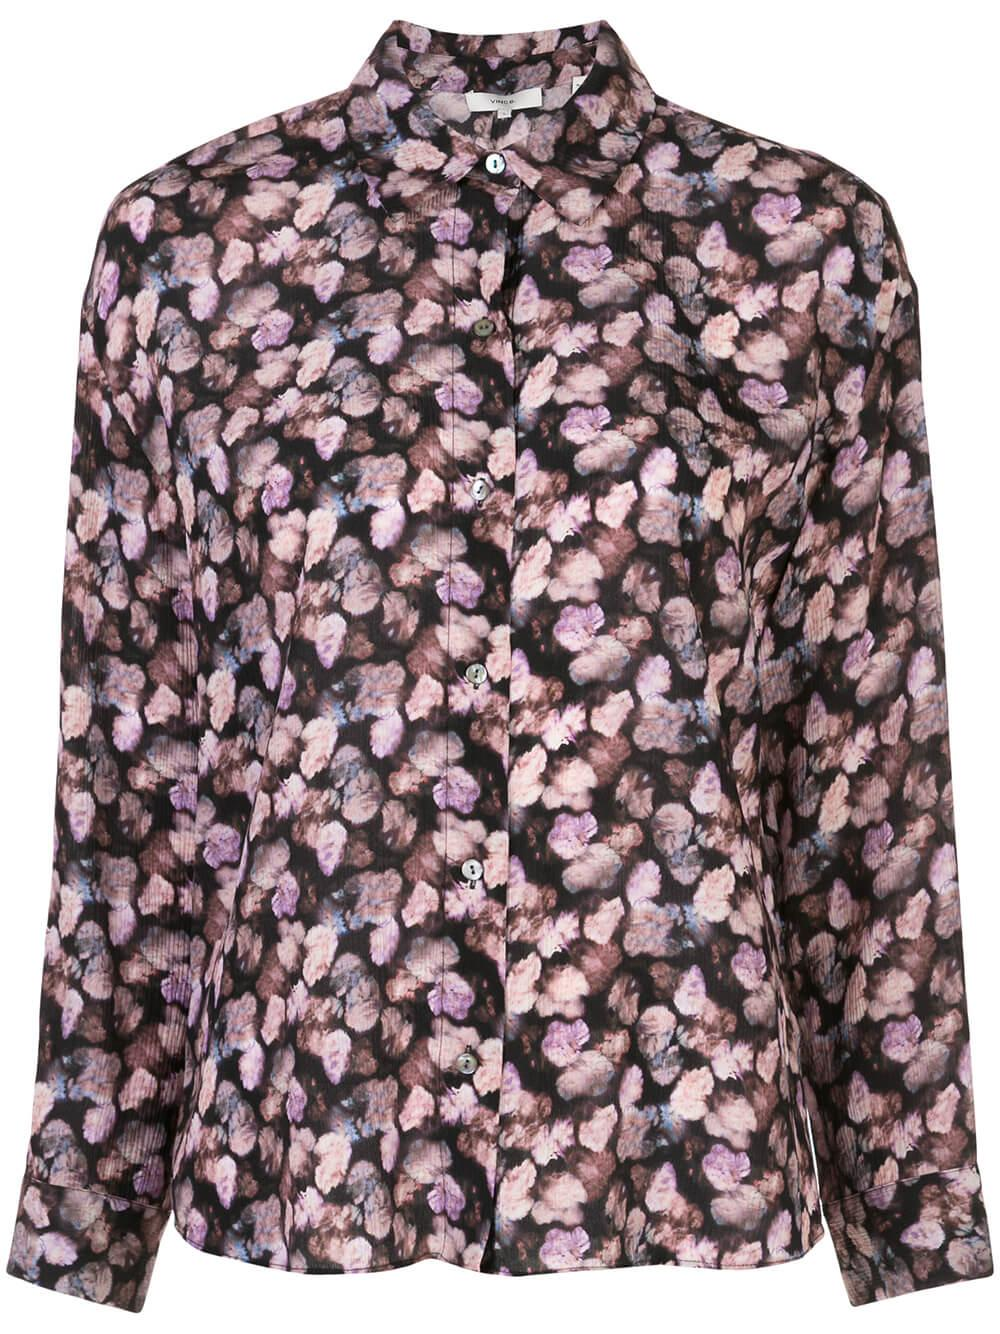 Micro Painted Floral Blouse Item # V631412266